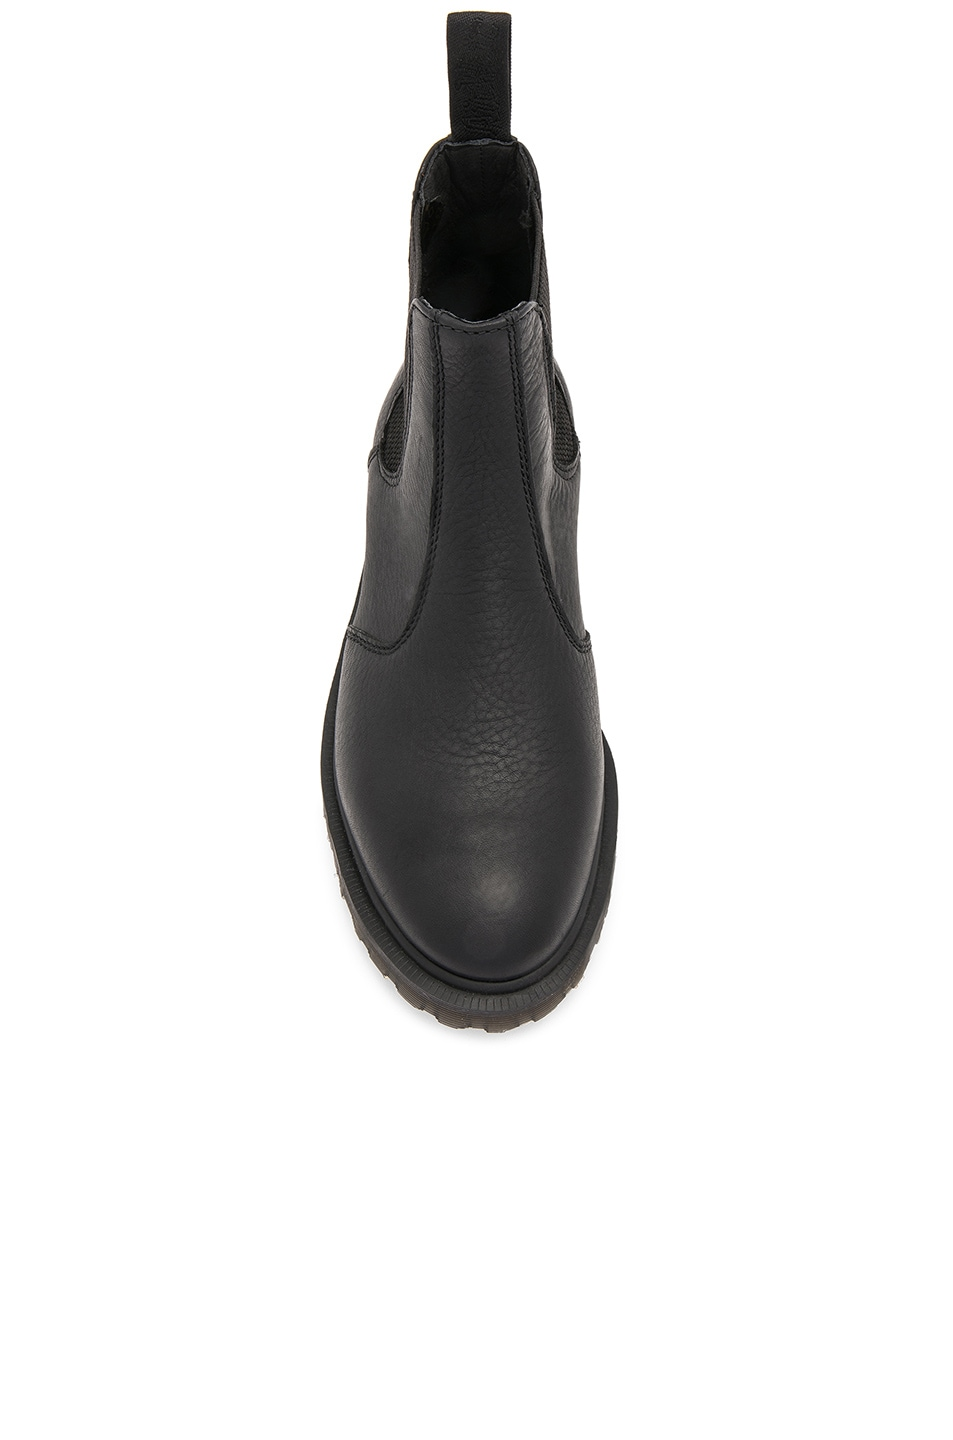 Image 4 of Dr. Martens 2976 Chelsea Leather Boots in Black